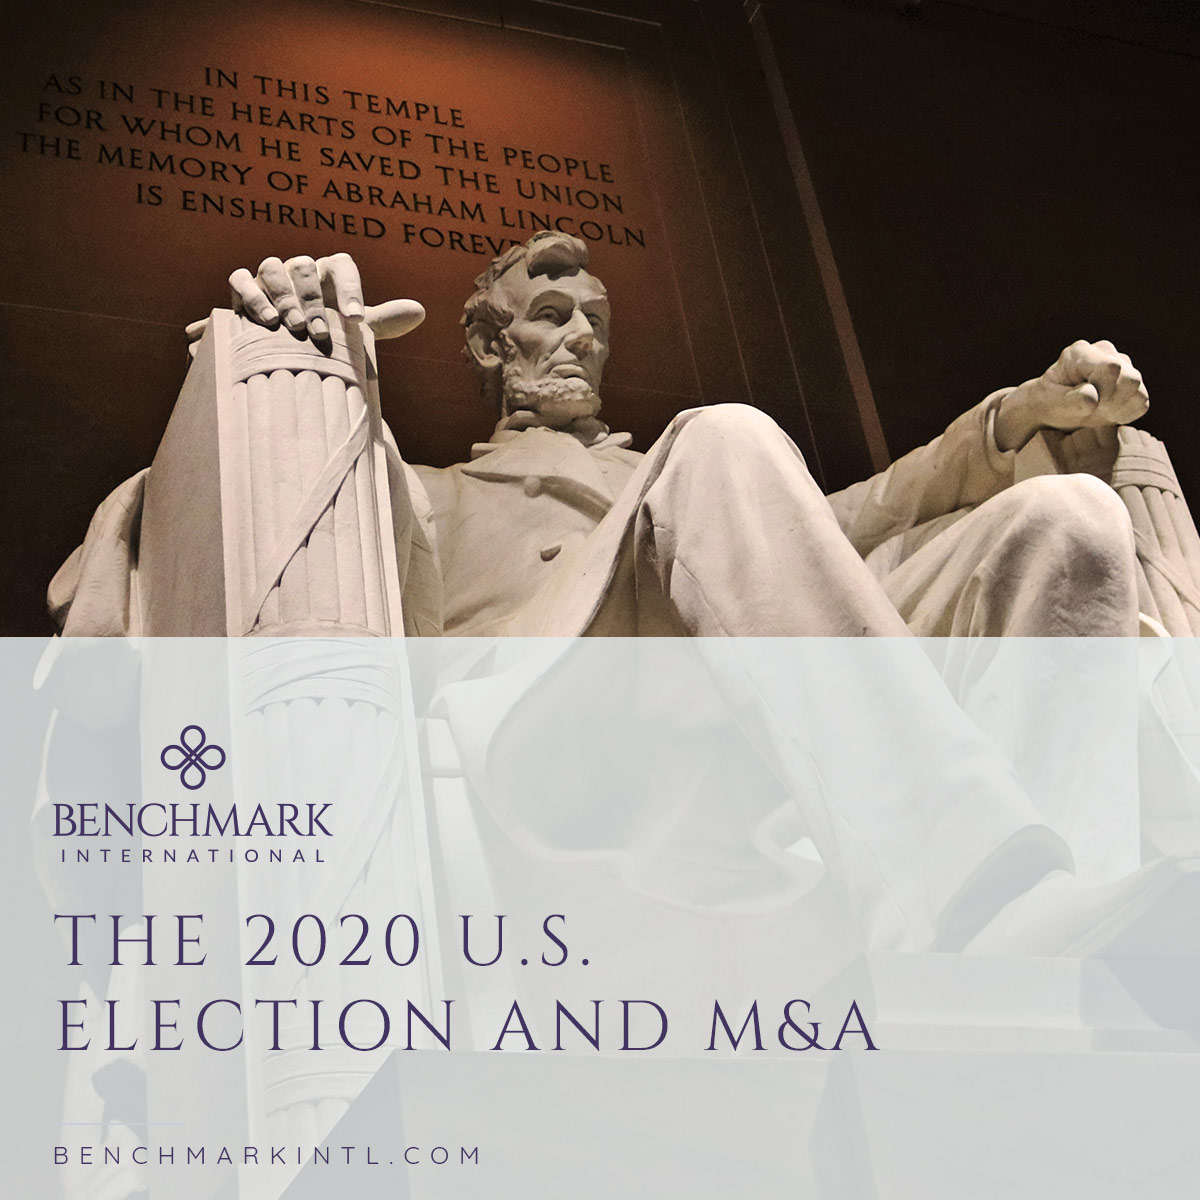 The_2020_U.S._Election_and_M&A_Social